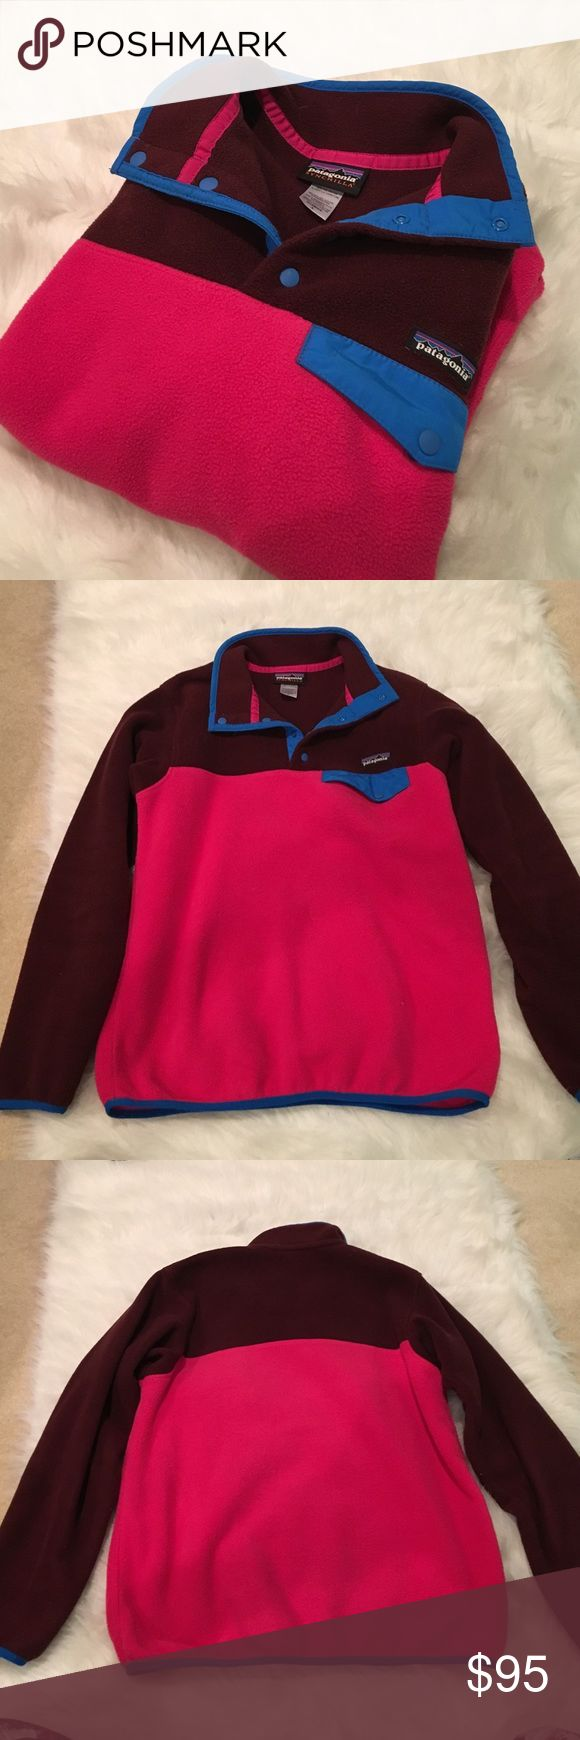 Patagonia Fleece Women's Patagonia synchilla fleece. Very good condition. 100 polyester. Pink, maroon, and blue. ONLY SALE, NO TRADES. Patagonia Tops Sweatshirts & Hoodies